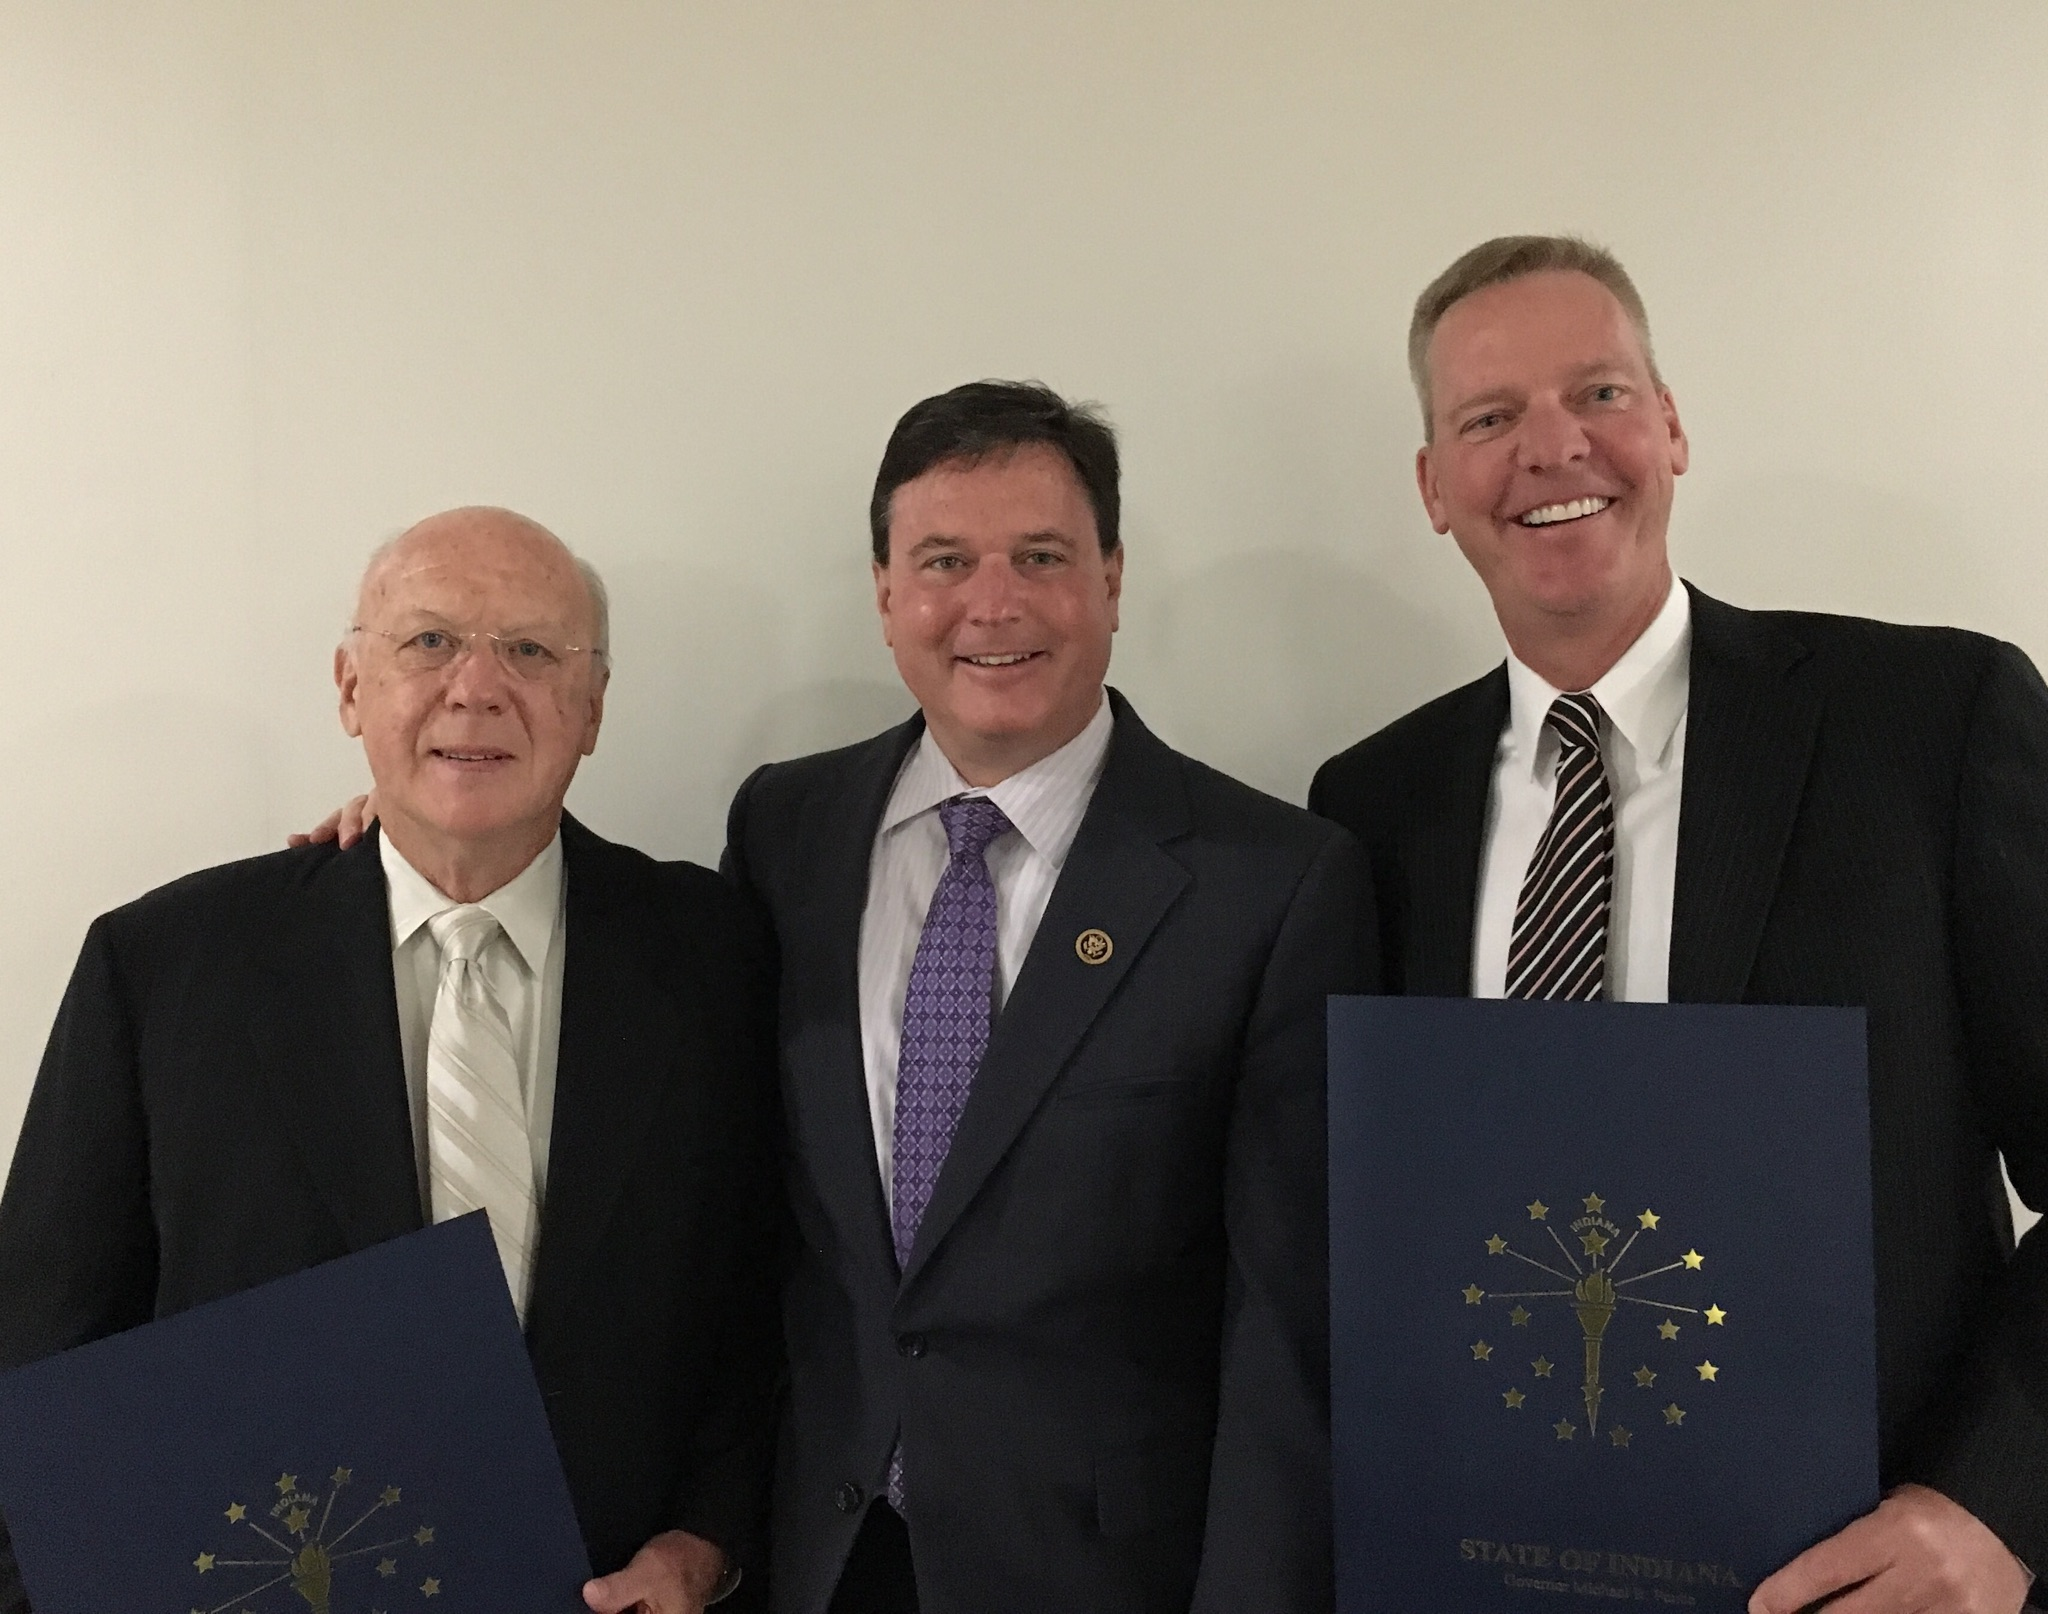 Dr. Ted Rokita, his son US Congressman Todd Rokita and Dr. Steven Hollar.